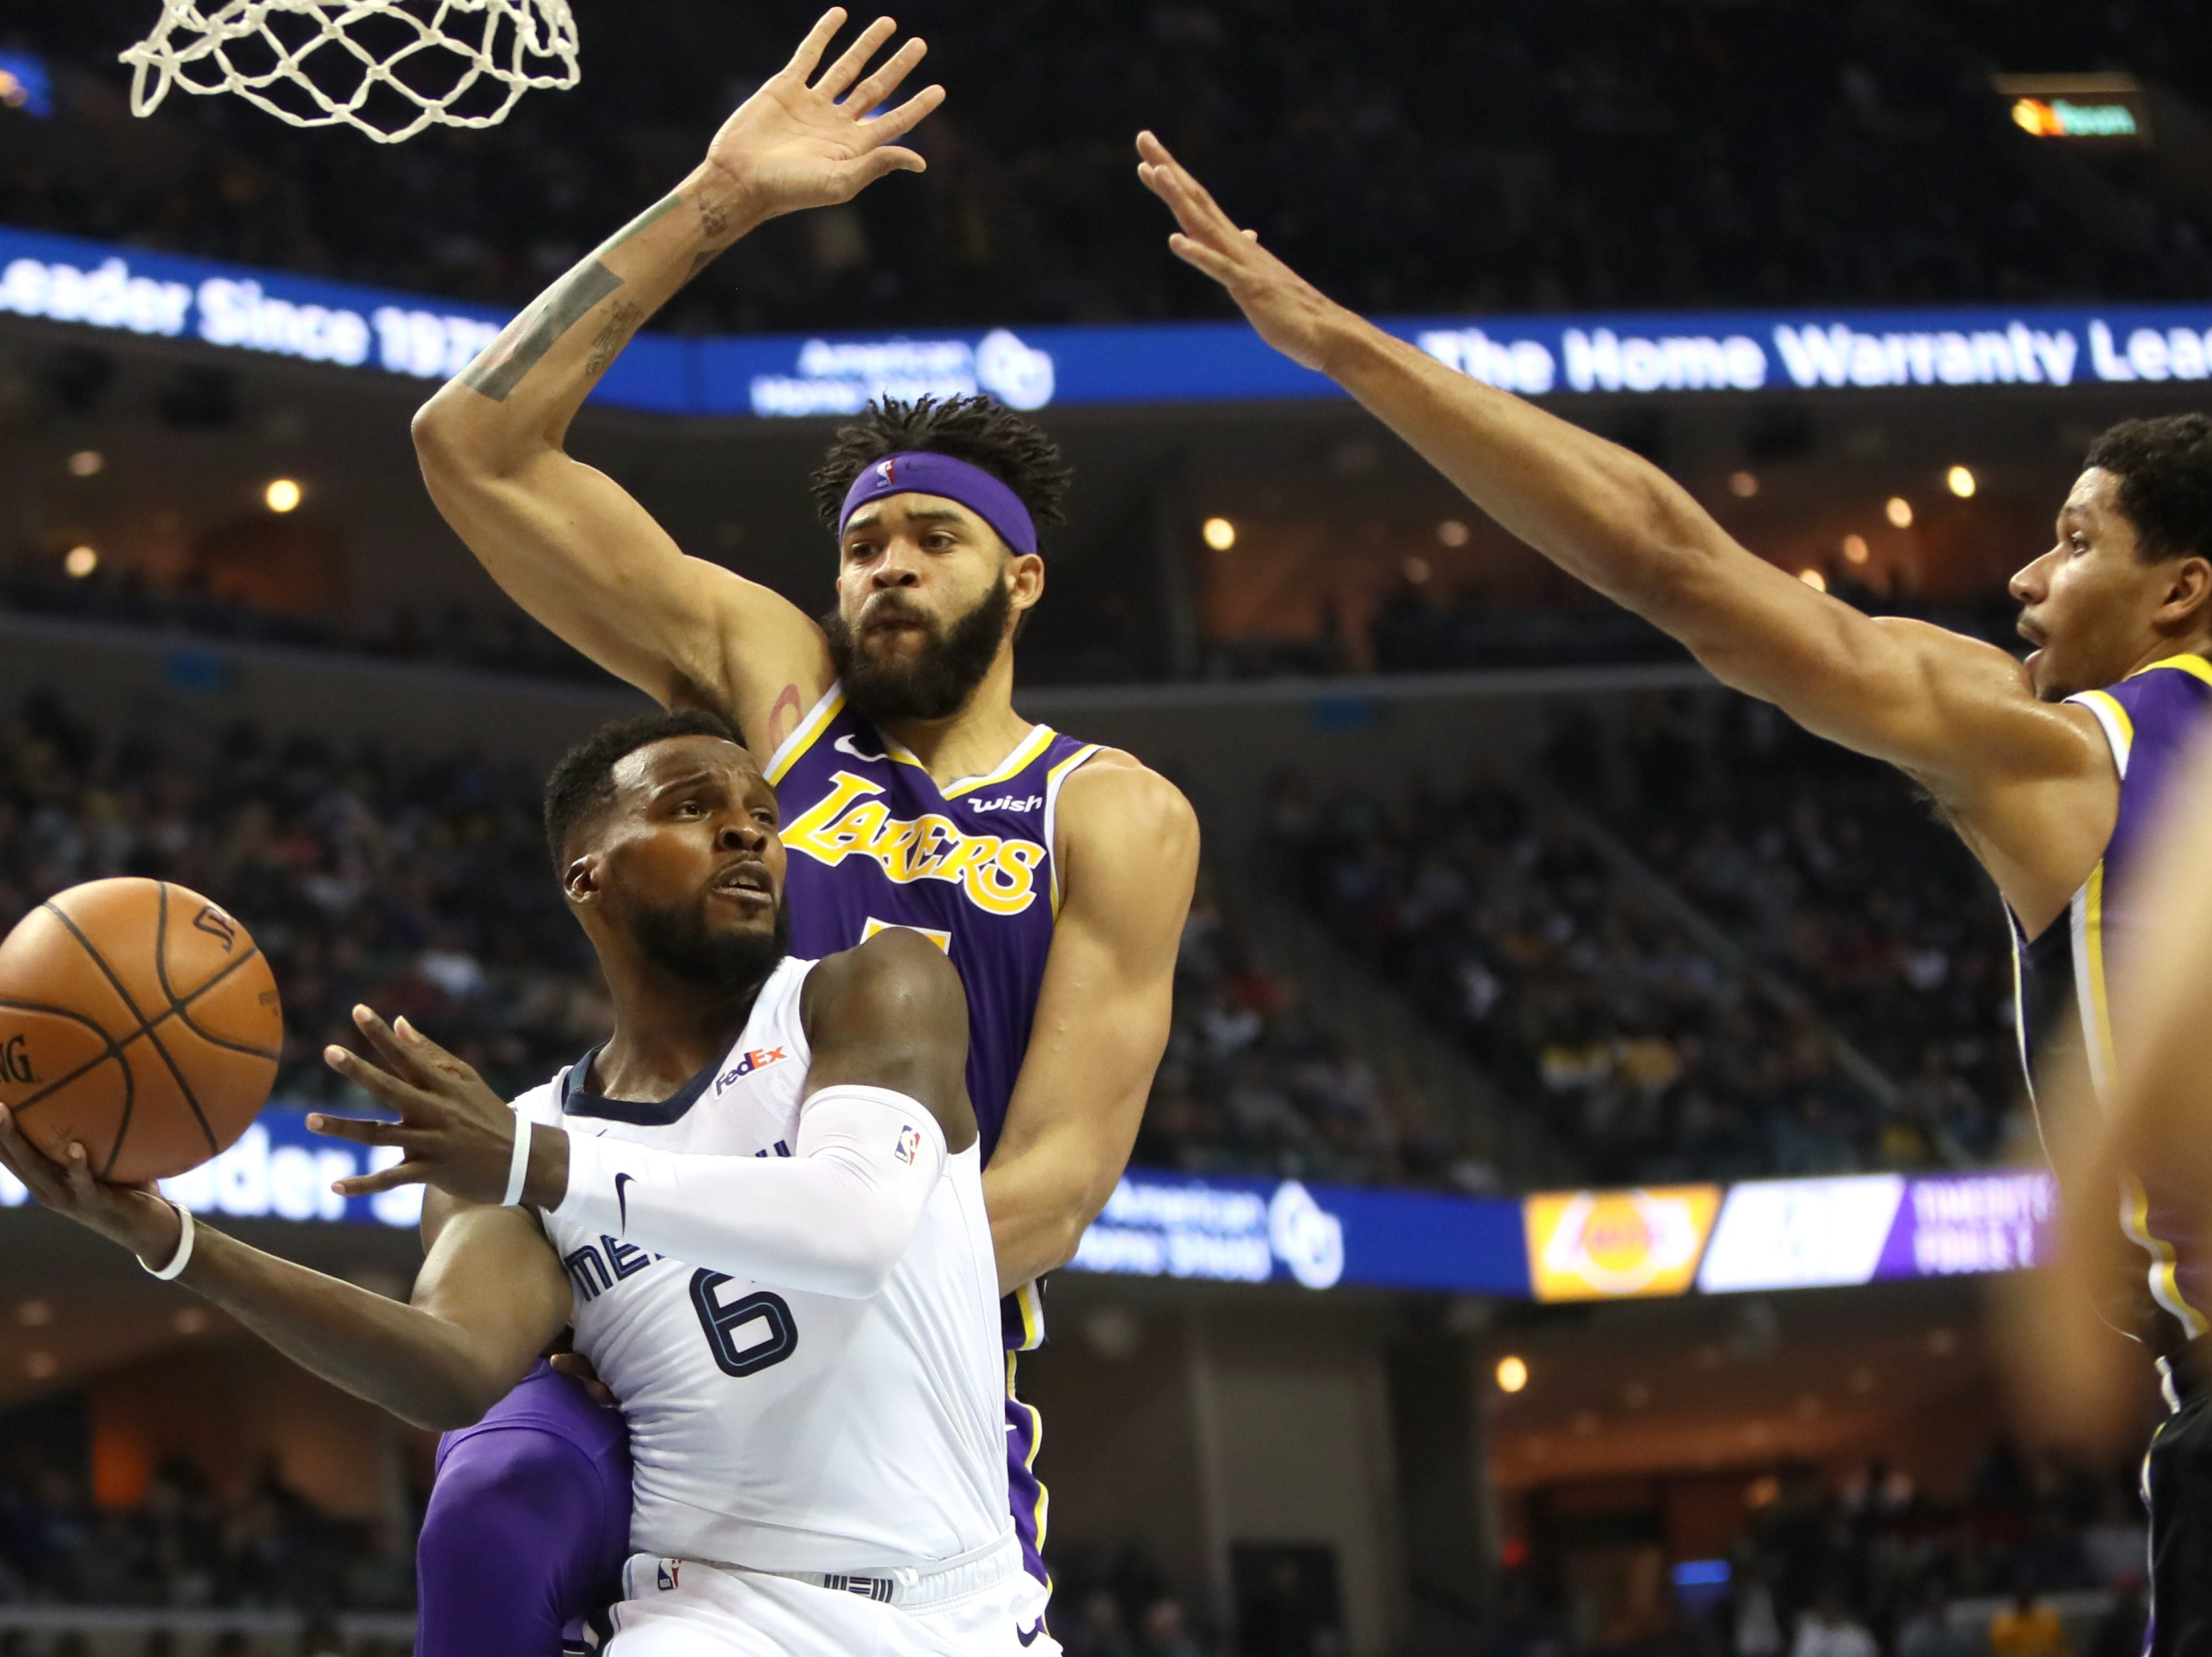 Memphis Grizzlies guard Shelvin Mack looks to pass the ball as Los Angeles Lakers center JaVale McGee defends at the FedExForum on Saturday, Dec. 6, 2018.